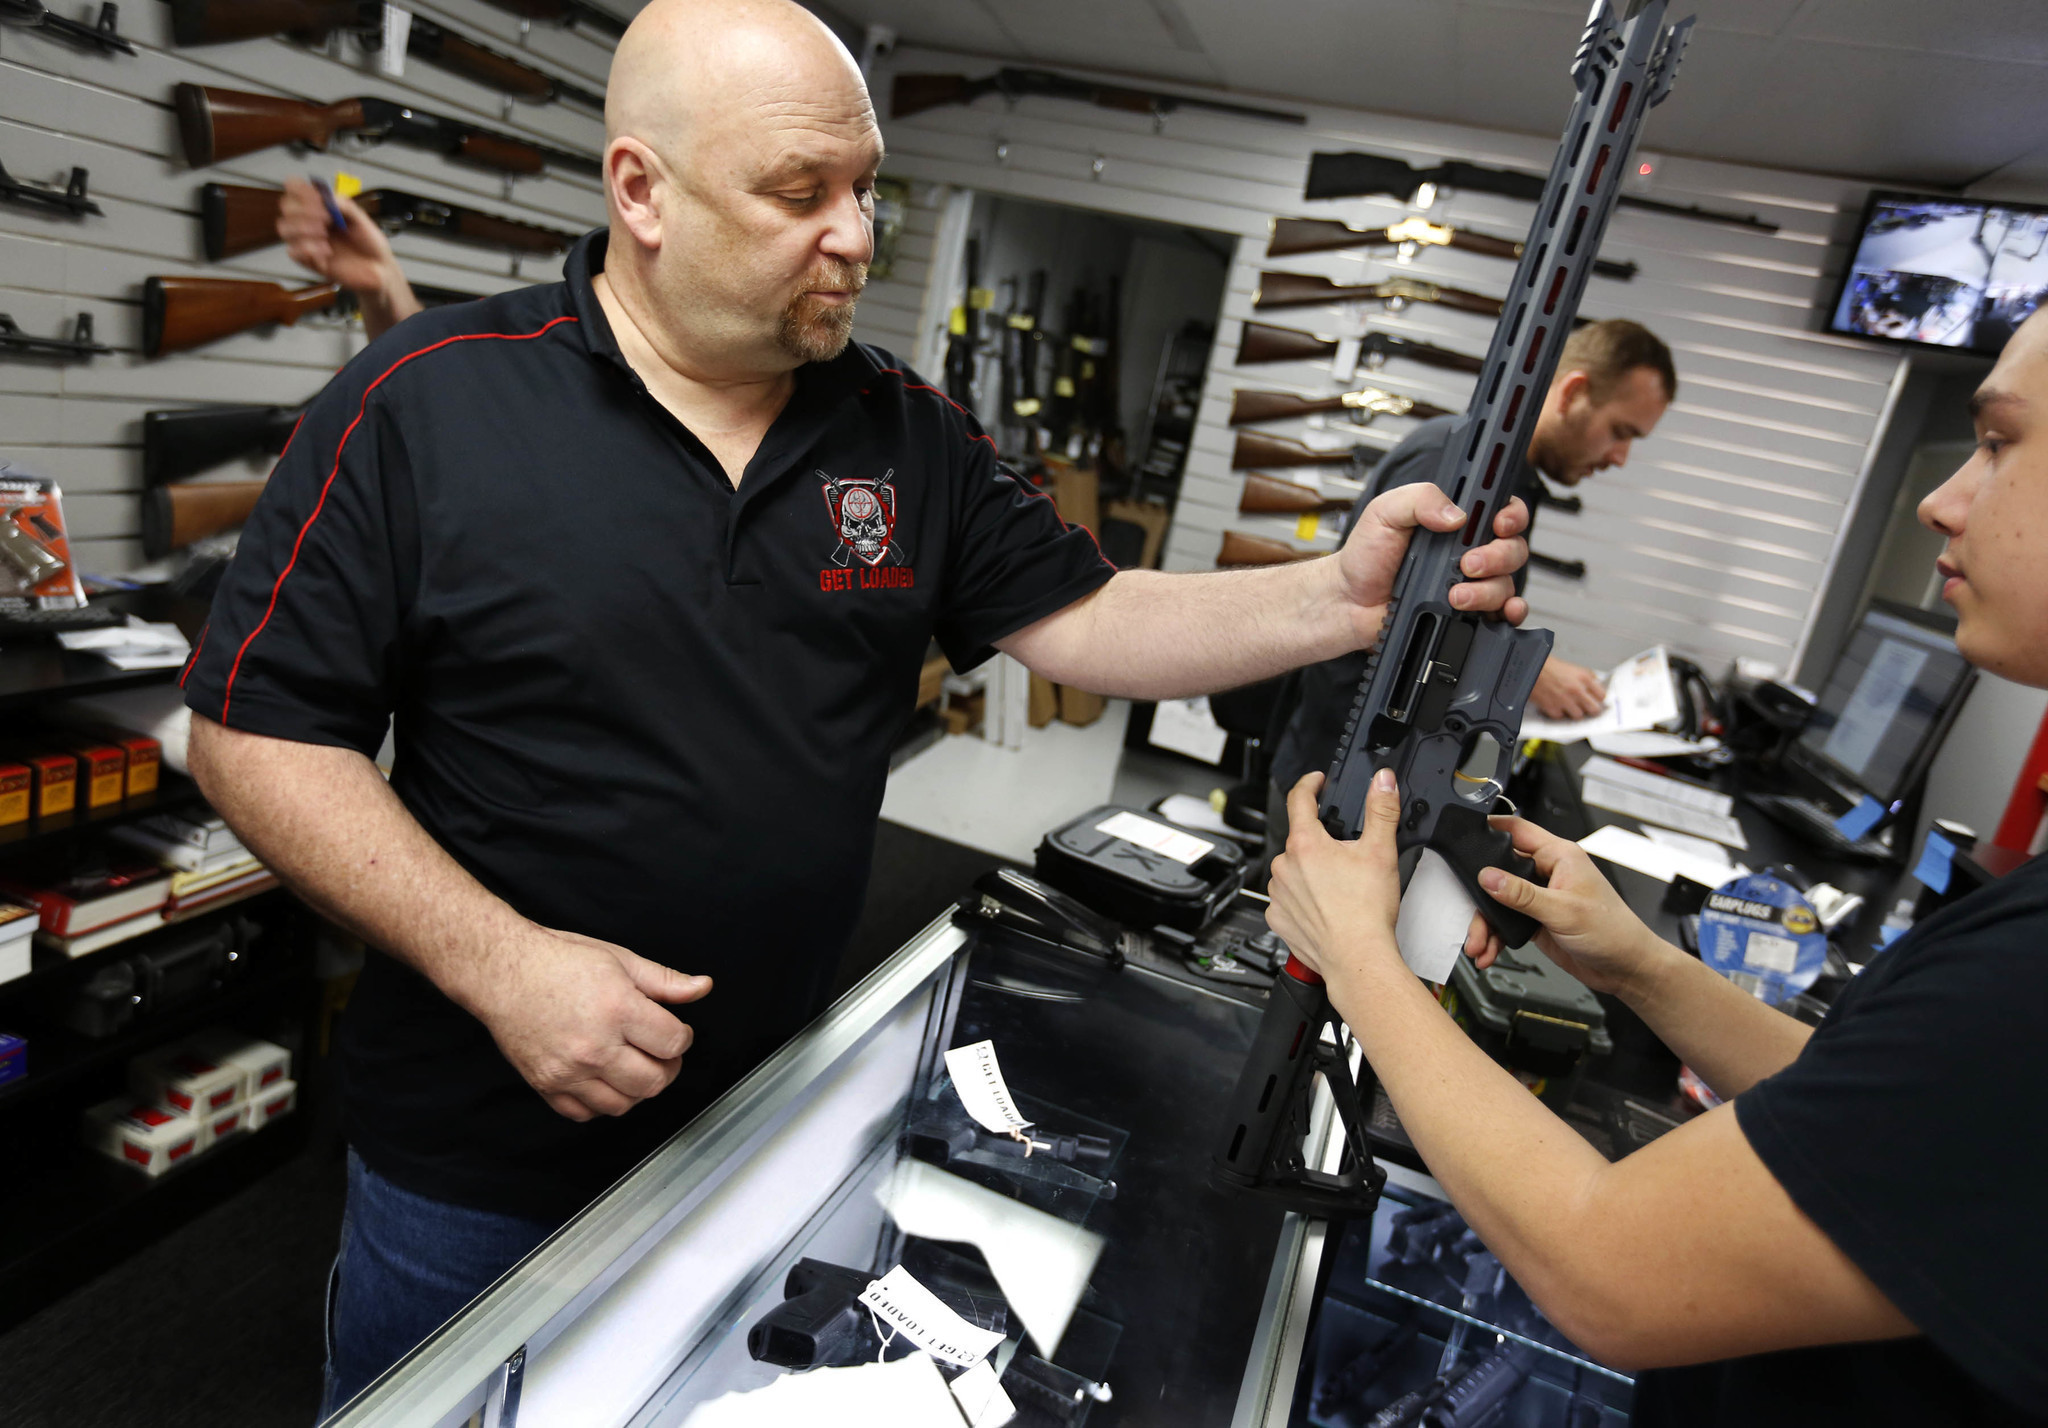 Terry McGuire, owner of Get Loaded in Grand Terrace, shows a customer a Cobalt Kinetics BAMF rifle about a week after the 2015 shooting rampage in nearby San Bernardino. (Barbara Davidson / Los Angeles Times)